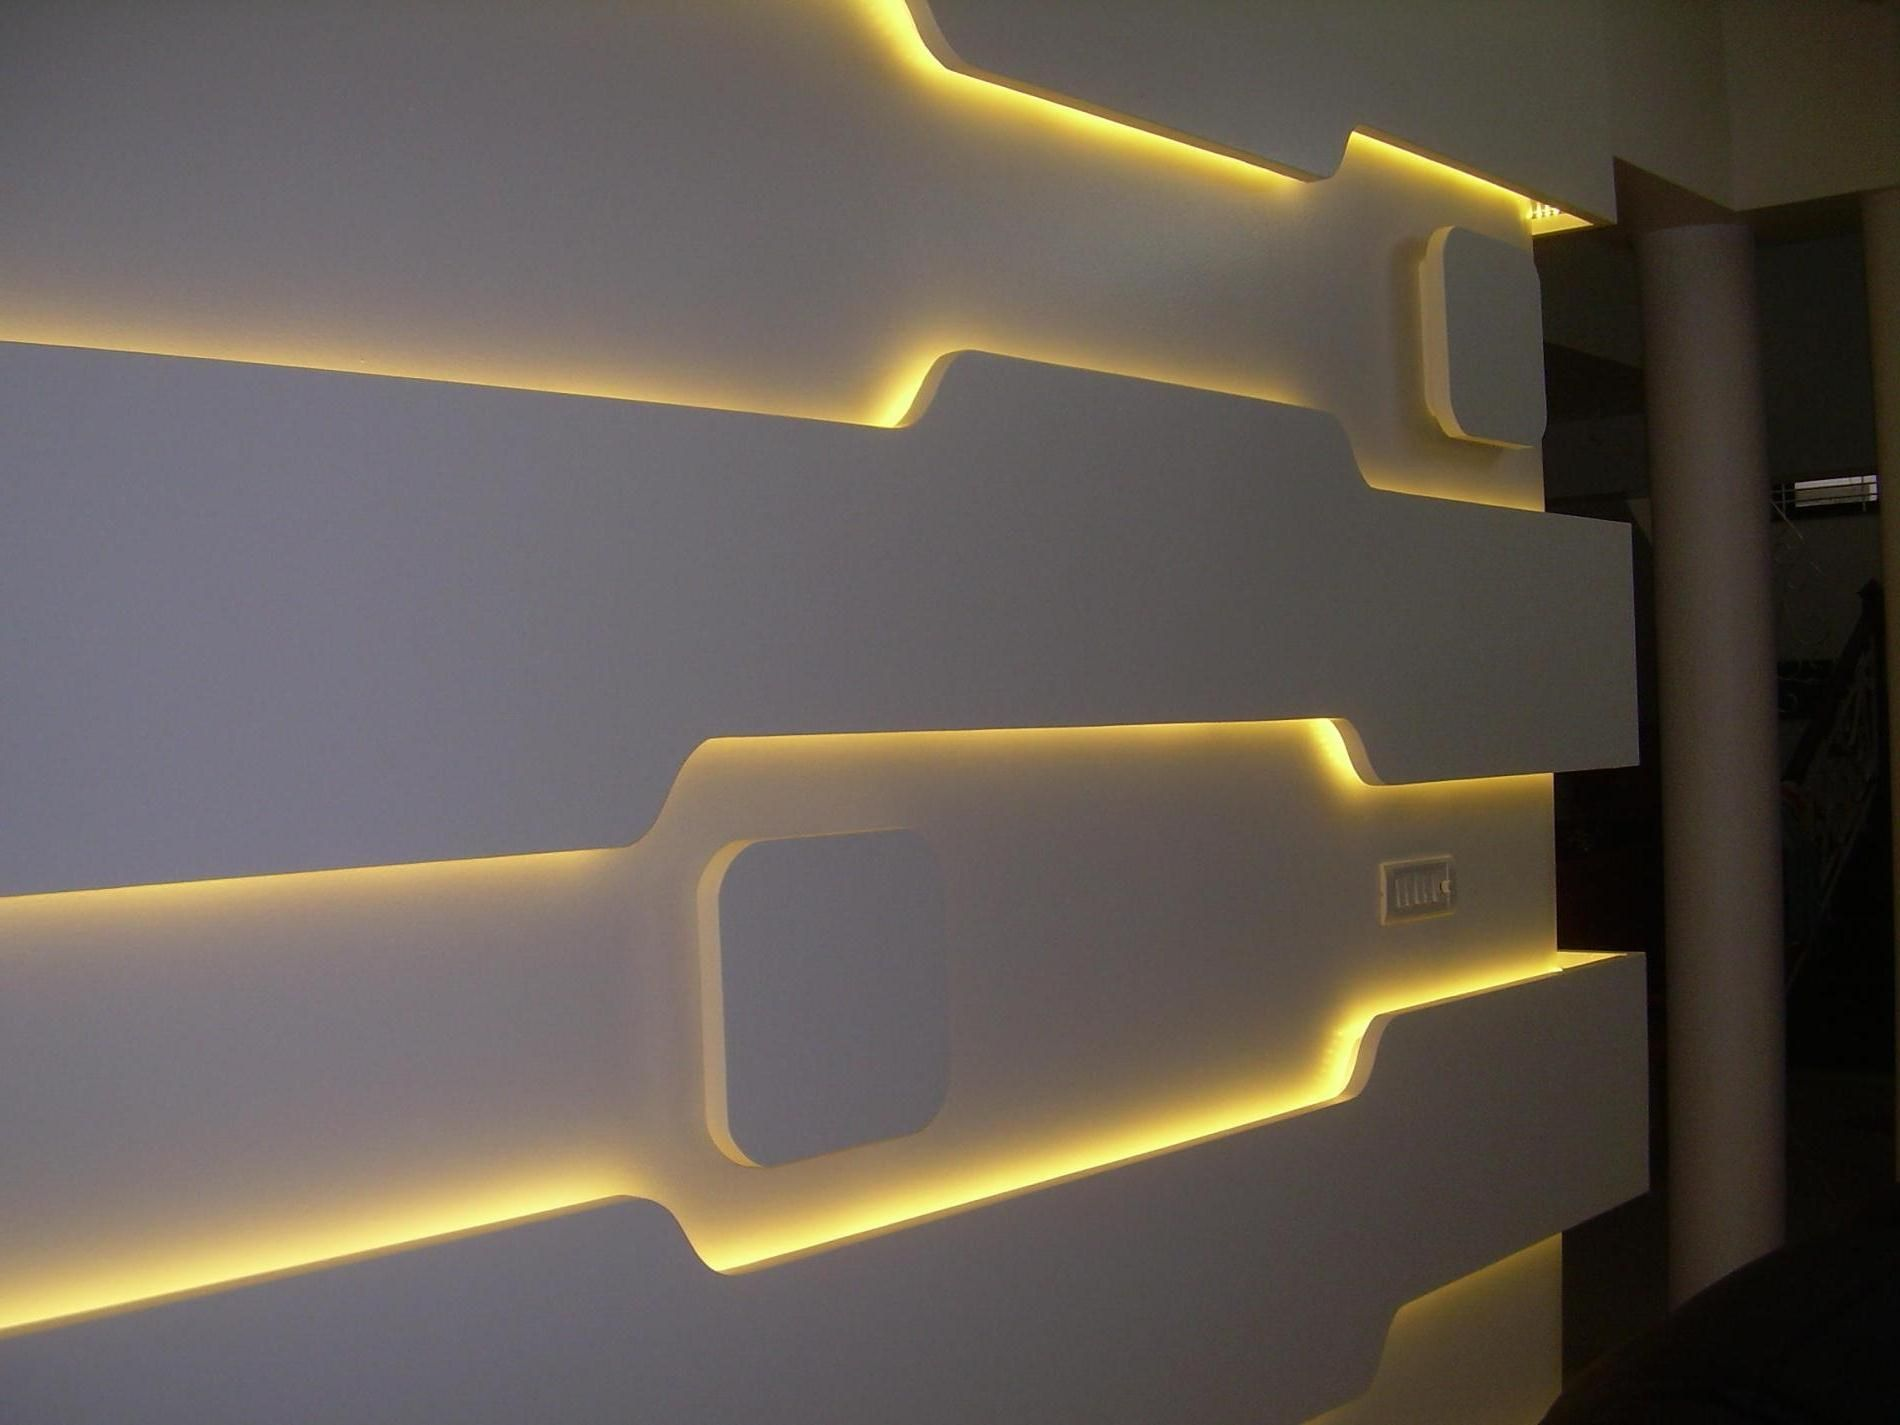 Unique Led Cove Lighting Design For Interior Decor